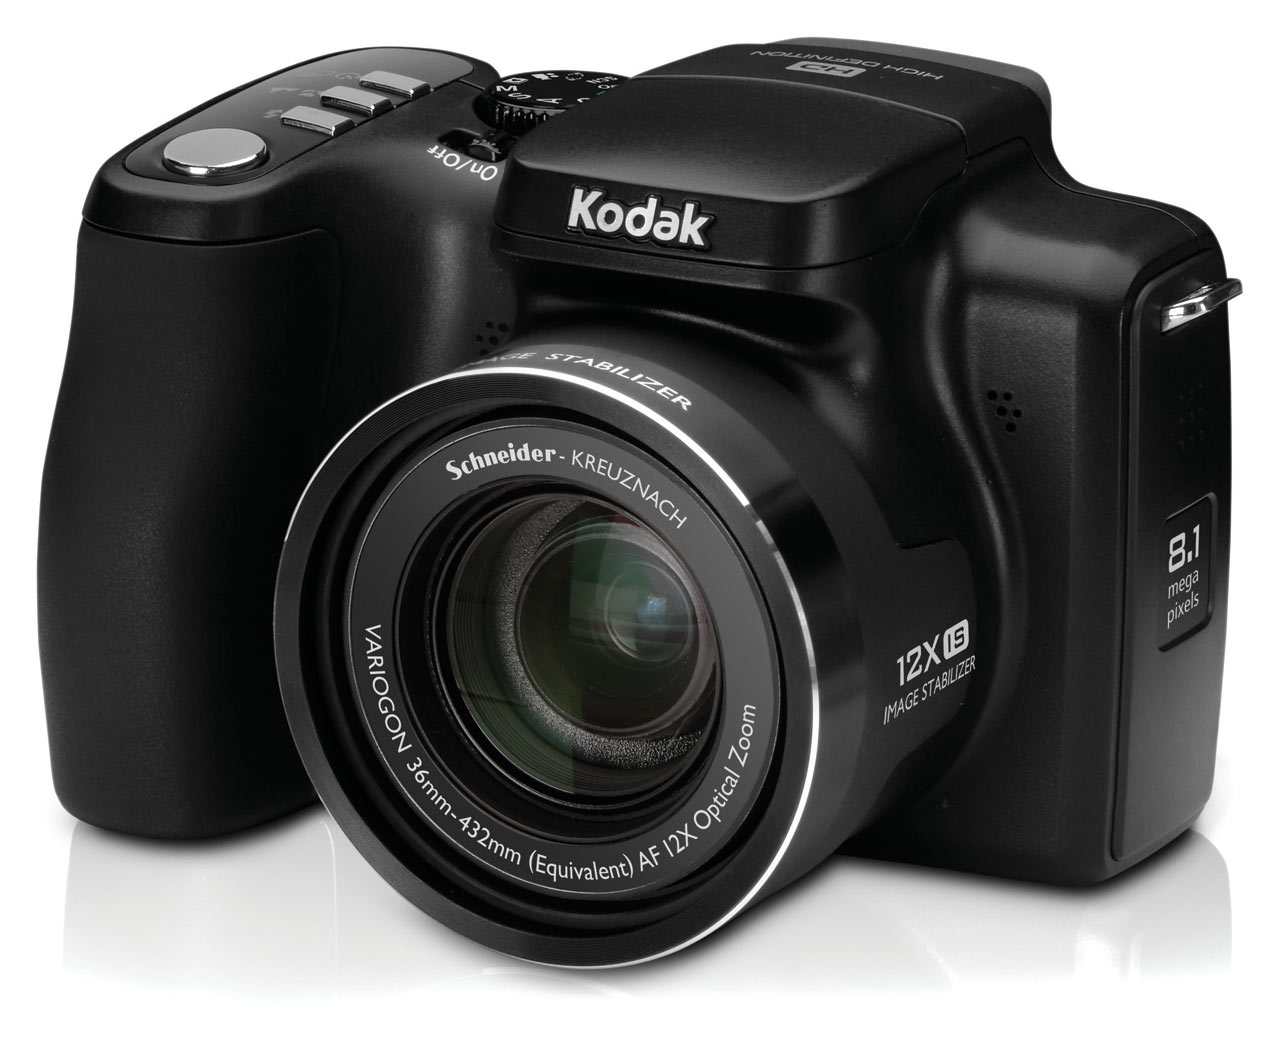 Kodak EASYSHARE goes HD: Digital Photography Review